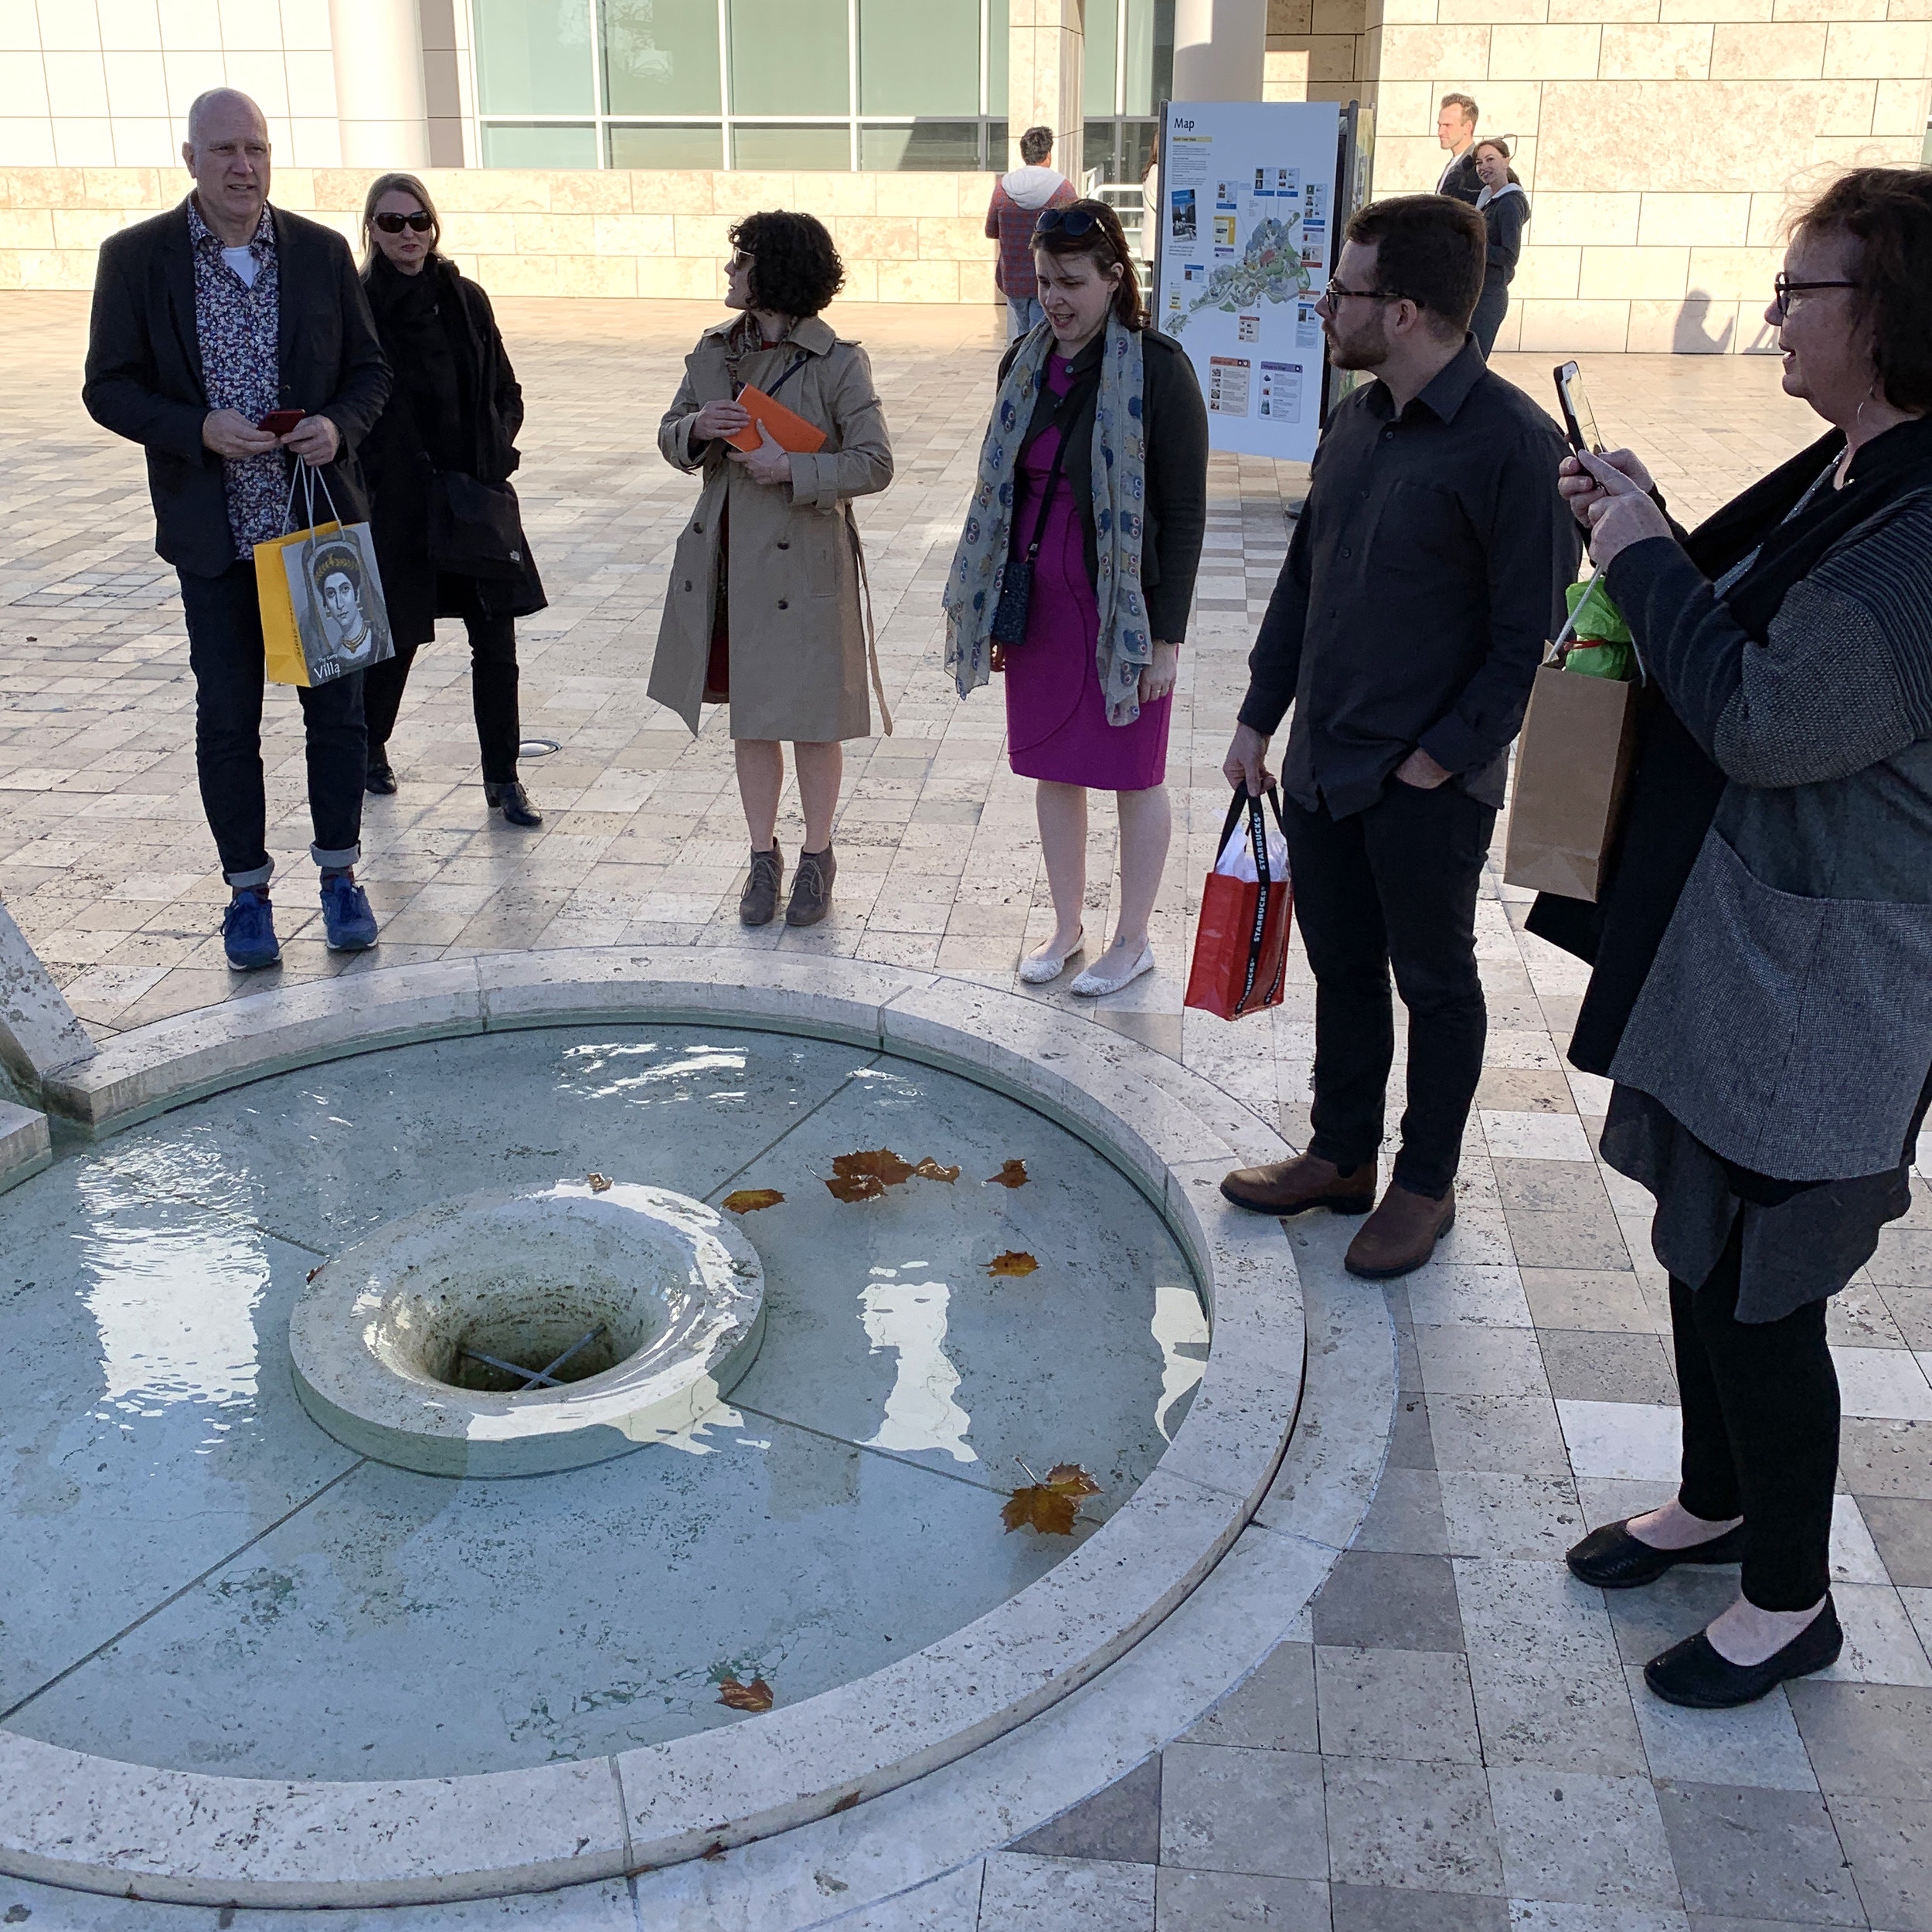 Convening at the stream's source - Getty Center